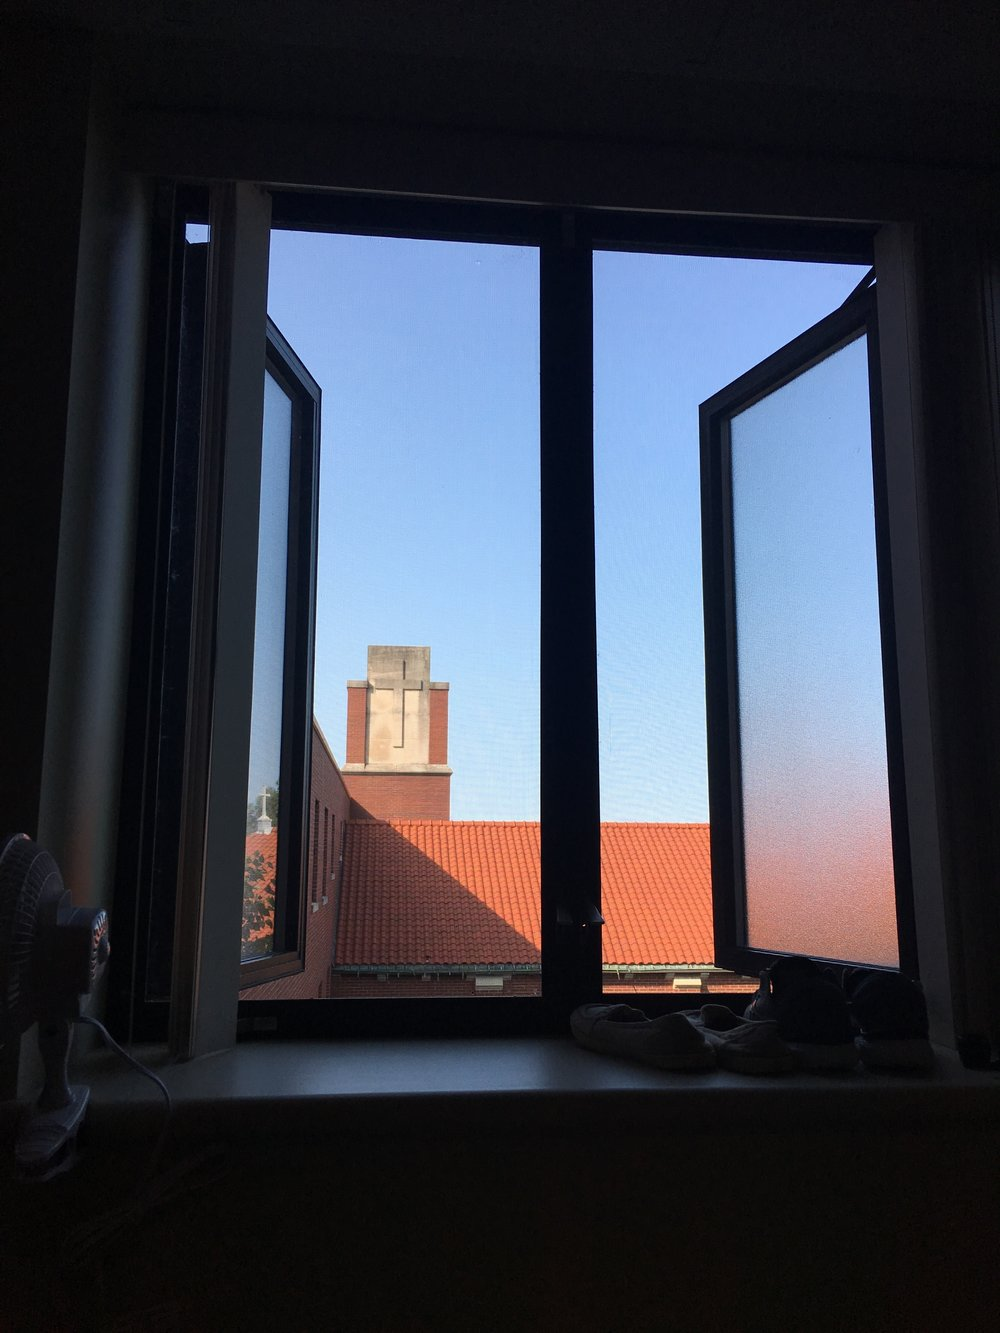 The View - Dorm life